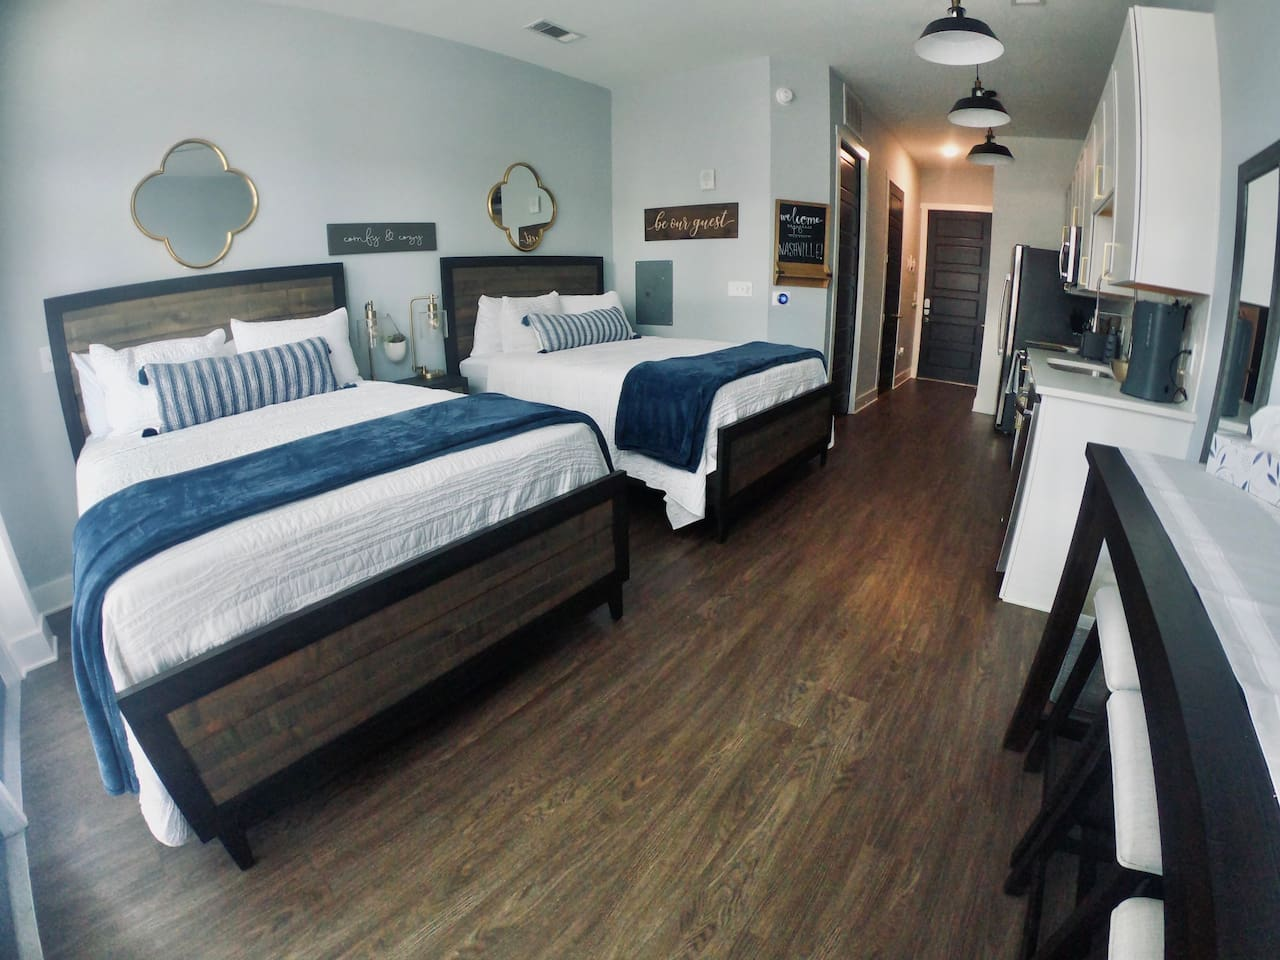 The only studio in the building with 2 queen size beds! Don't make anyone sleep on a pull-out couch! We offer the most comfortable space at the best price for 4 travelers.